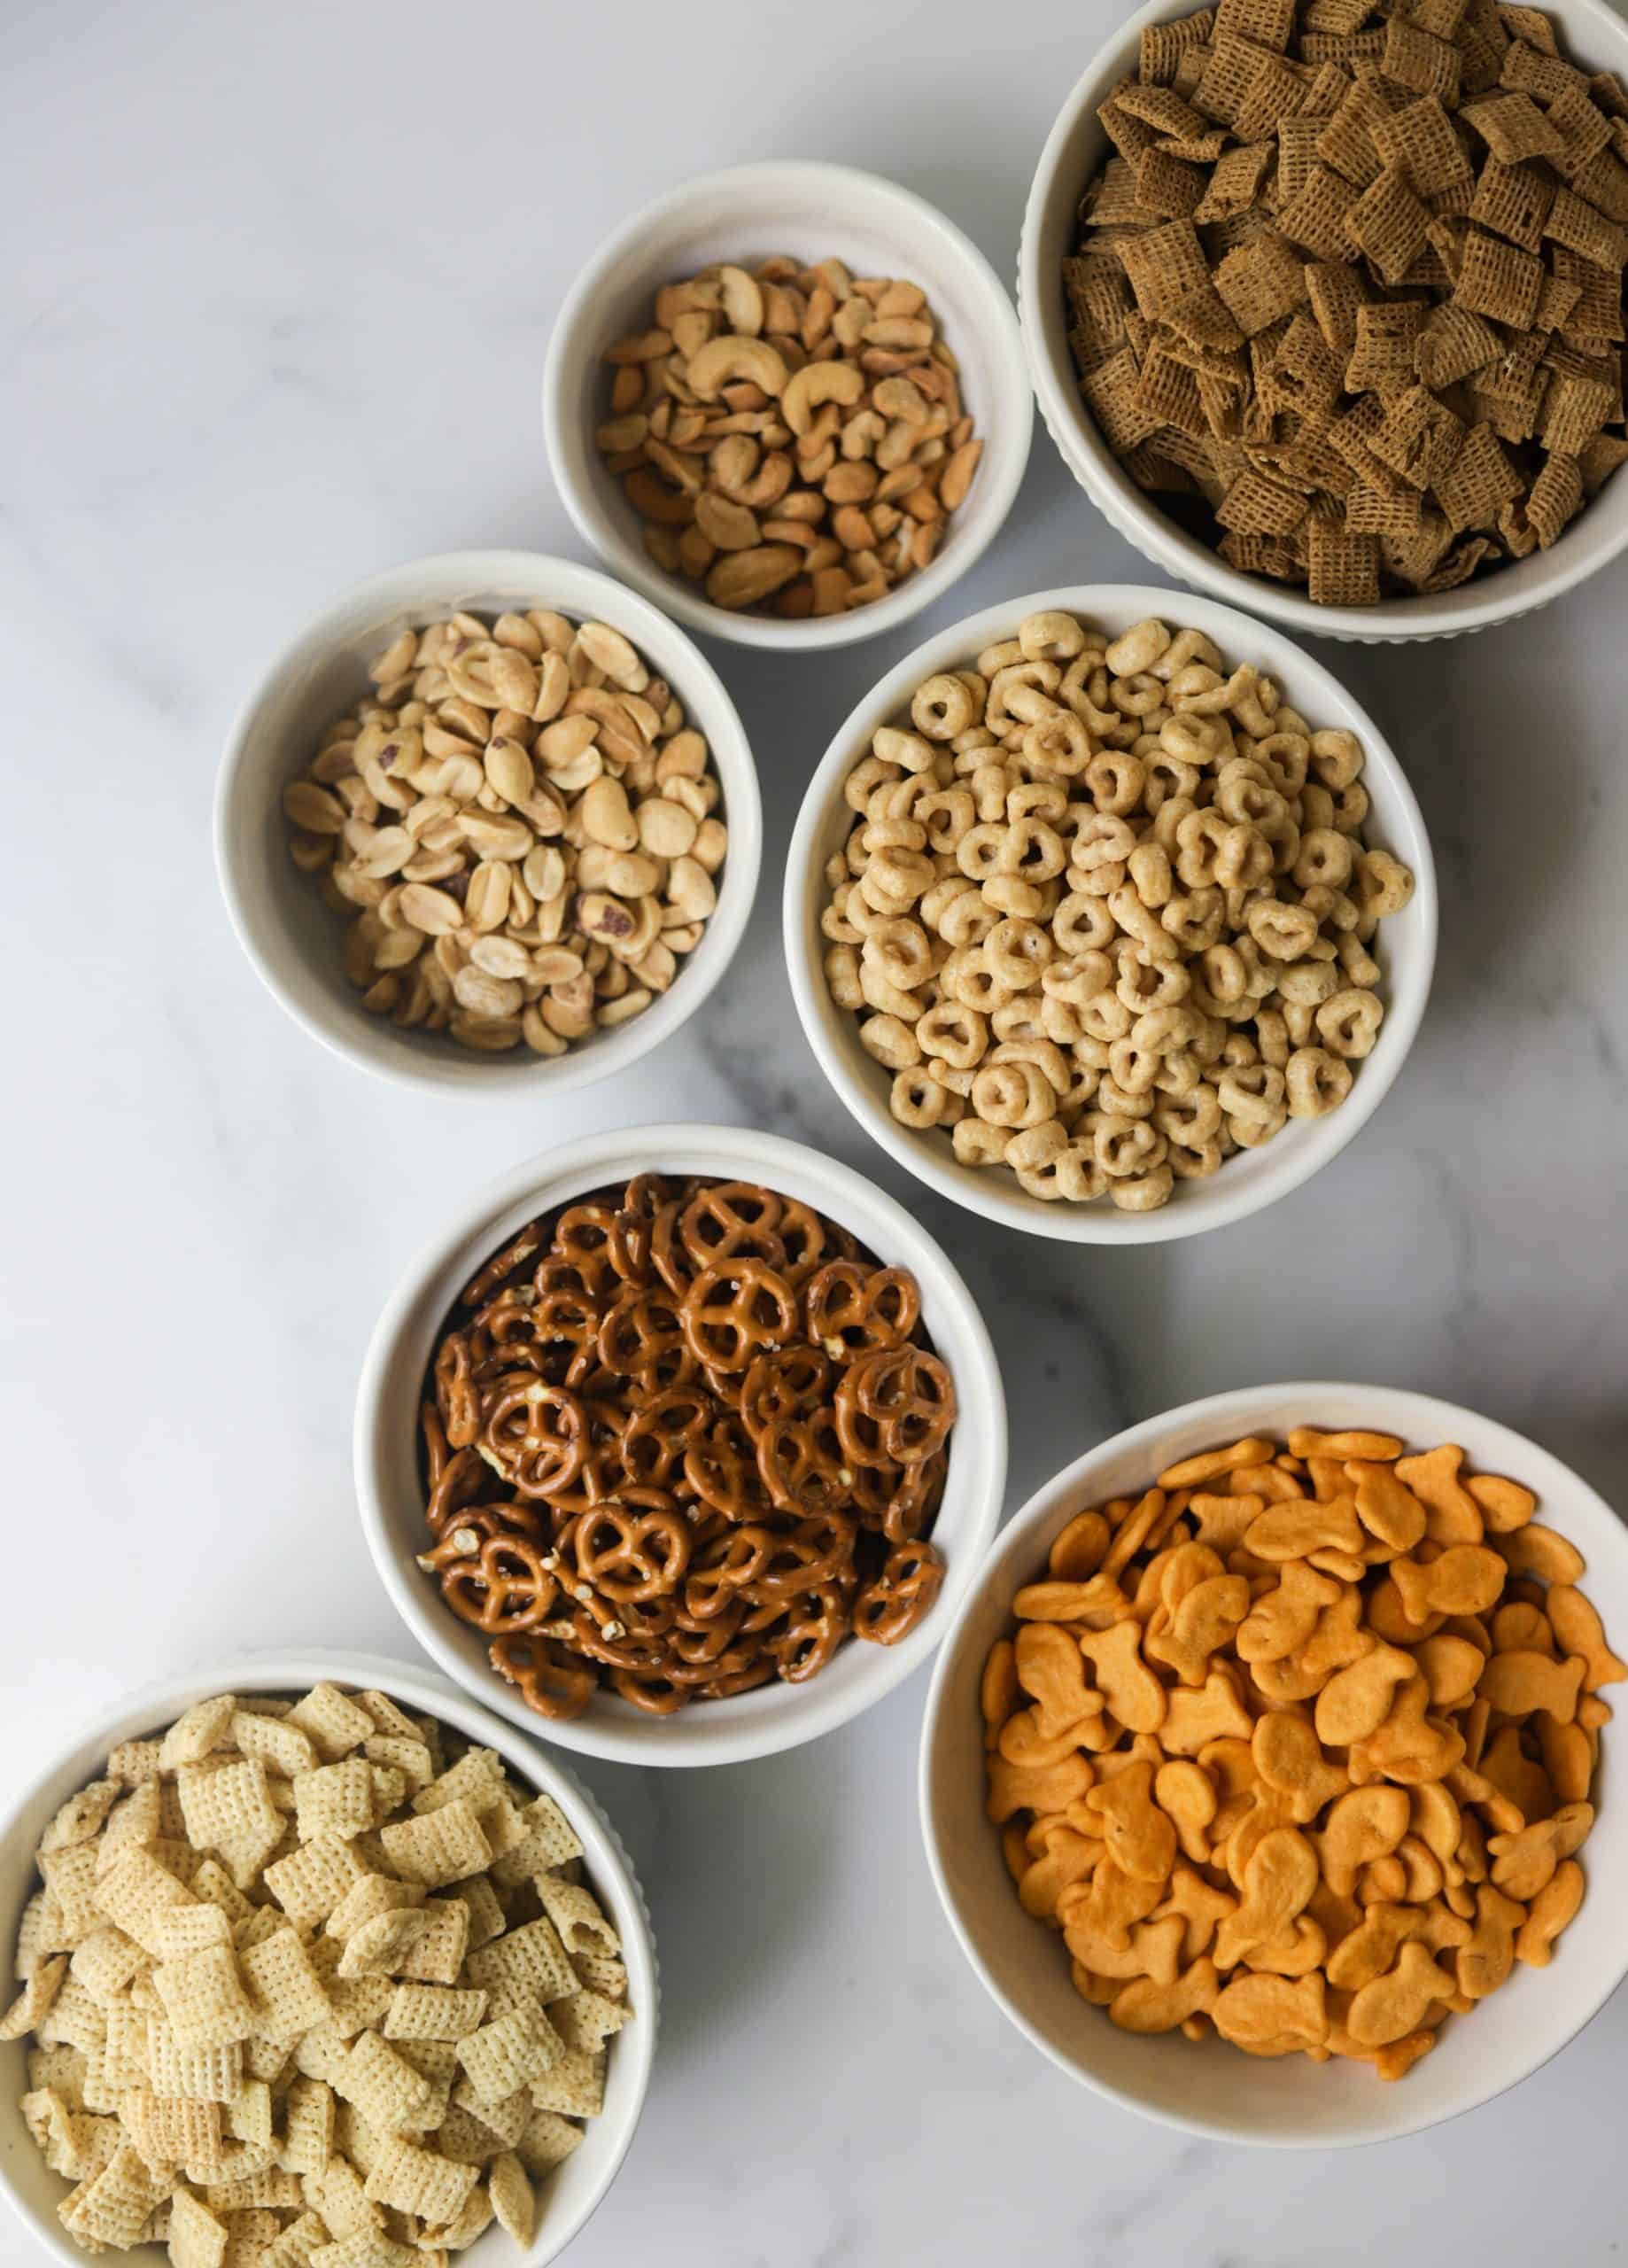 White bowls filled with chex mix ingredients.